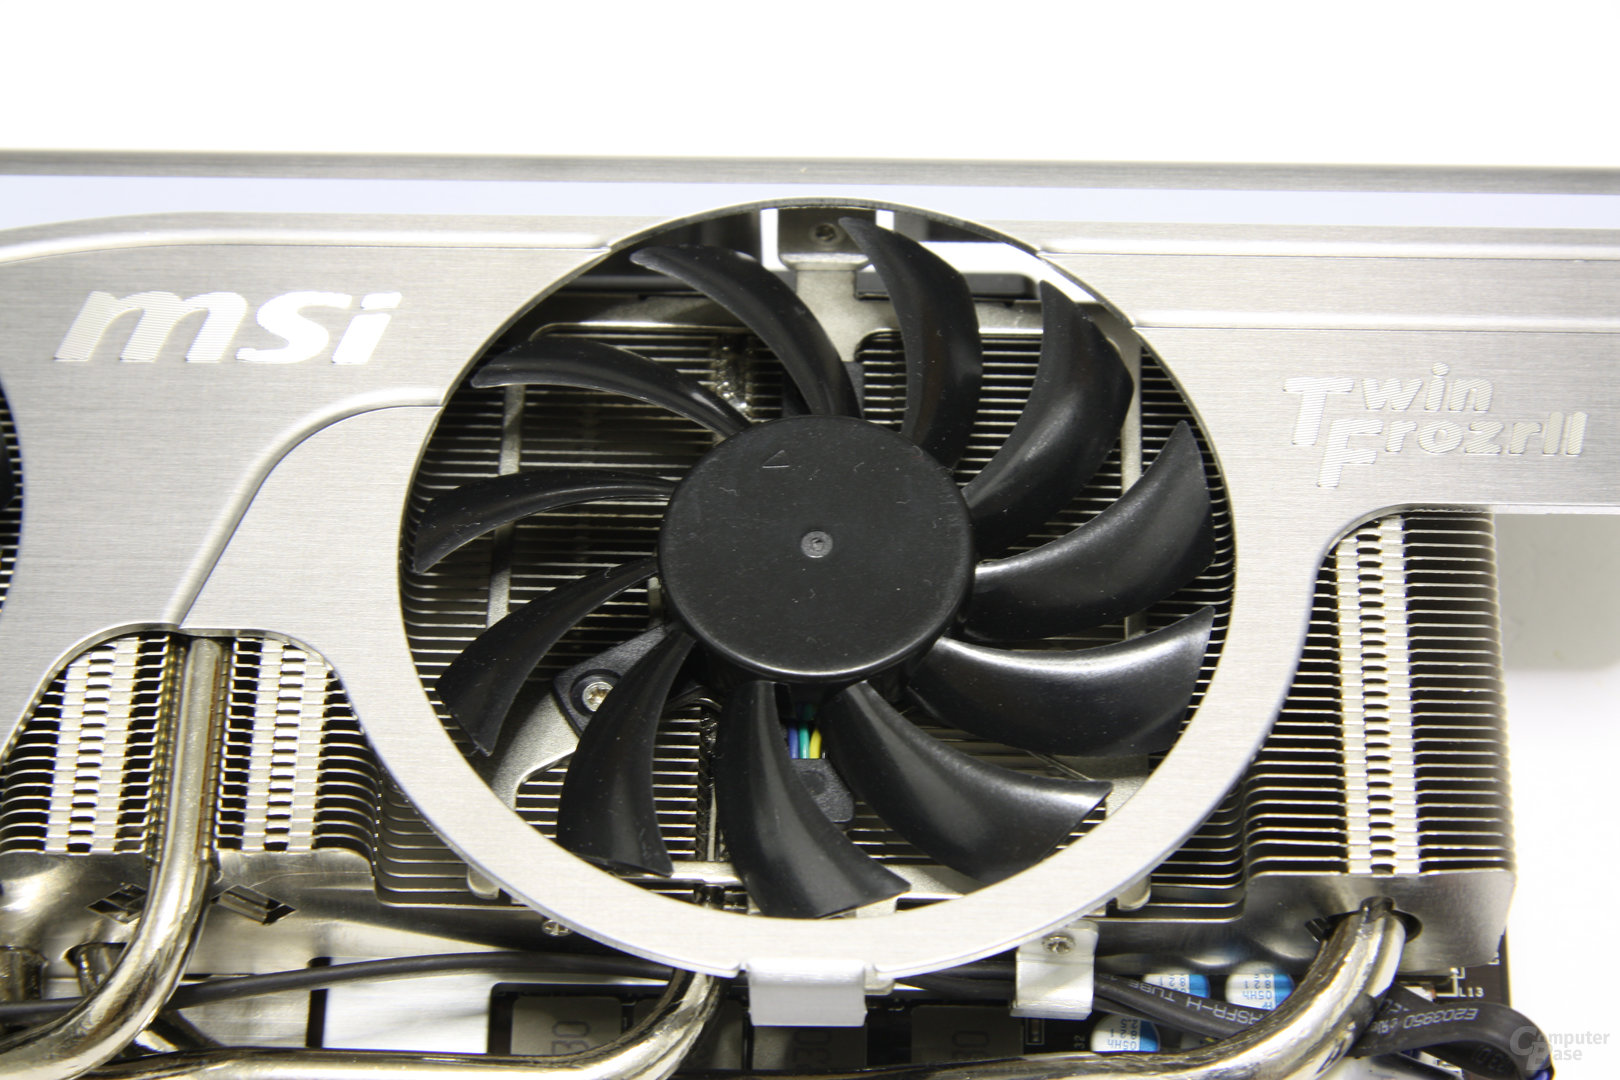 GeForce GTX 470 Twin Frozr II Lüfter